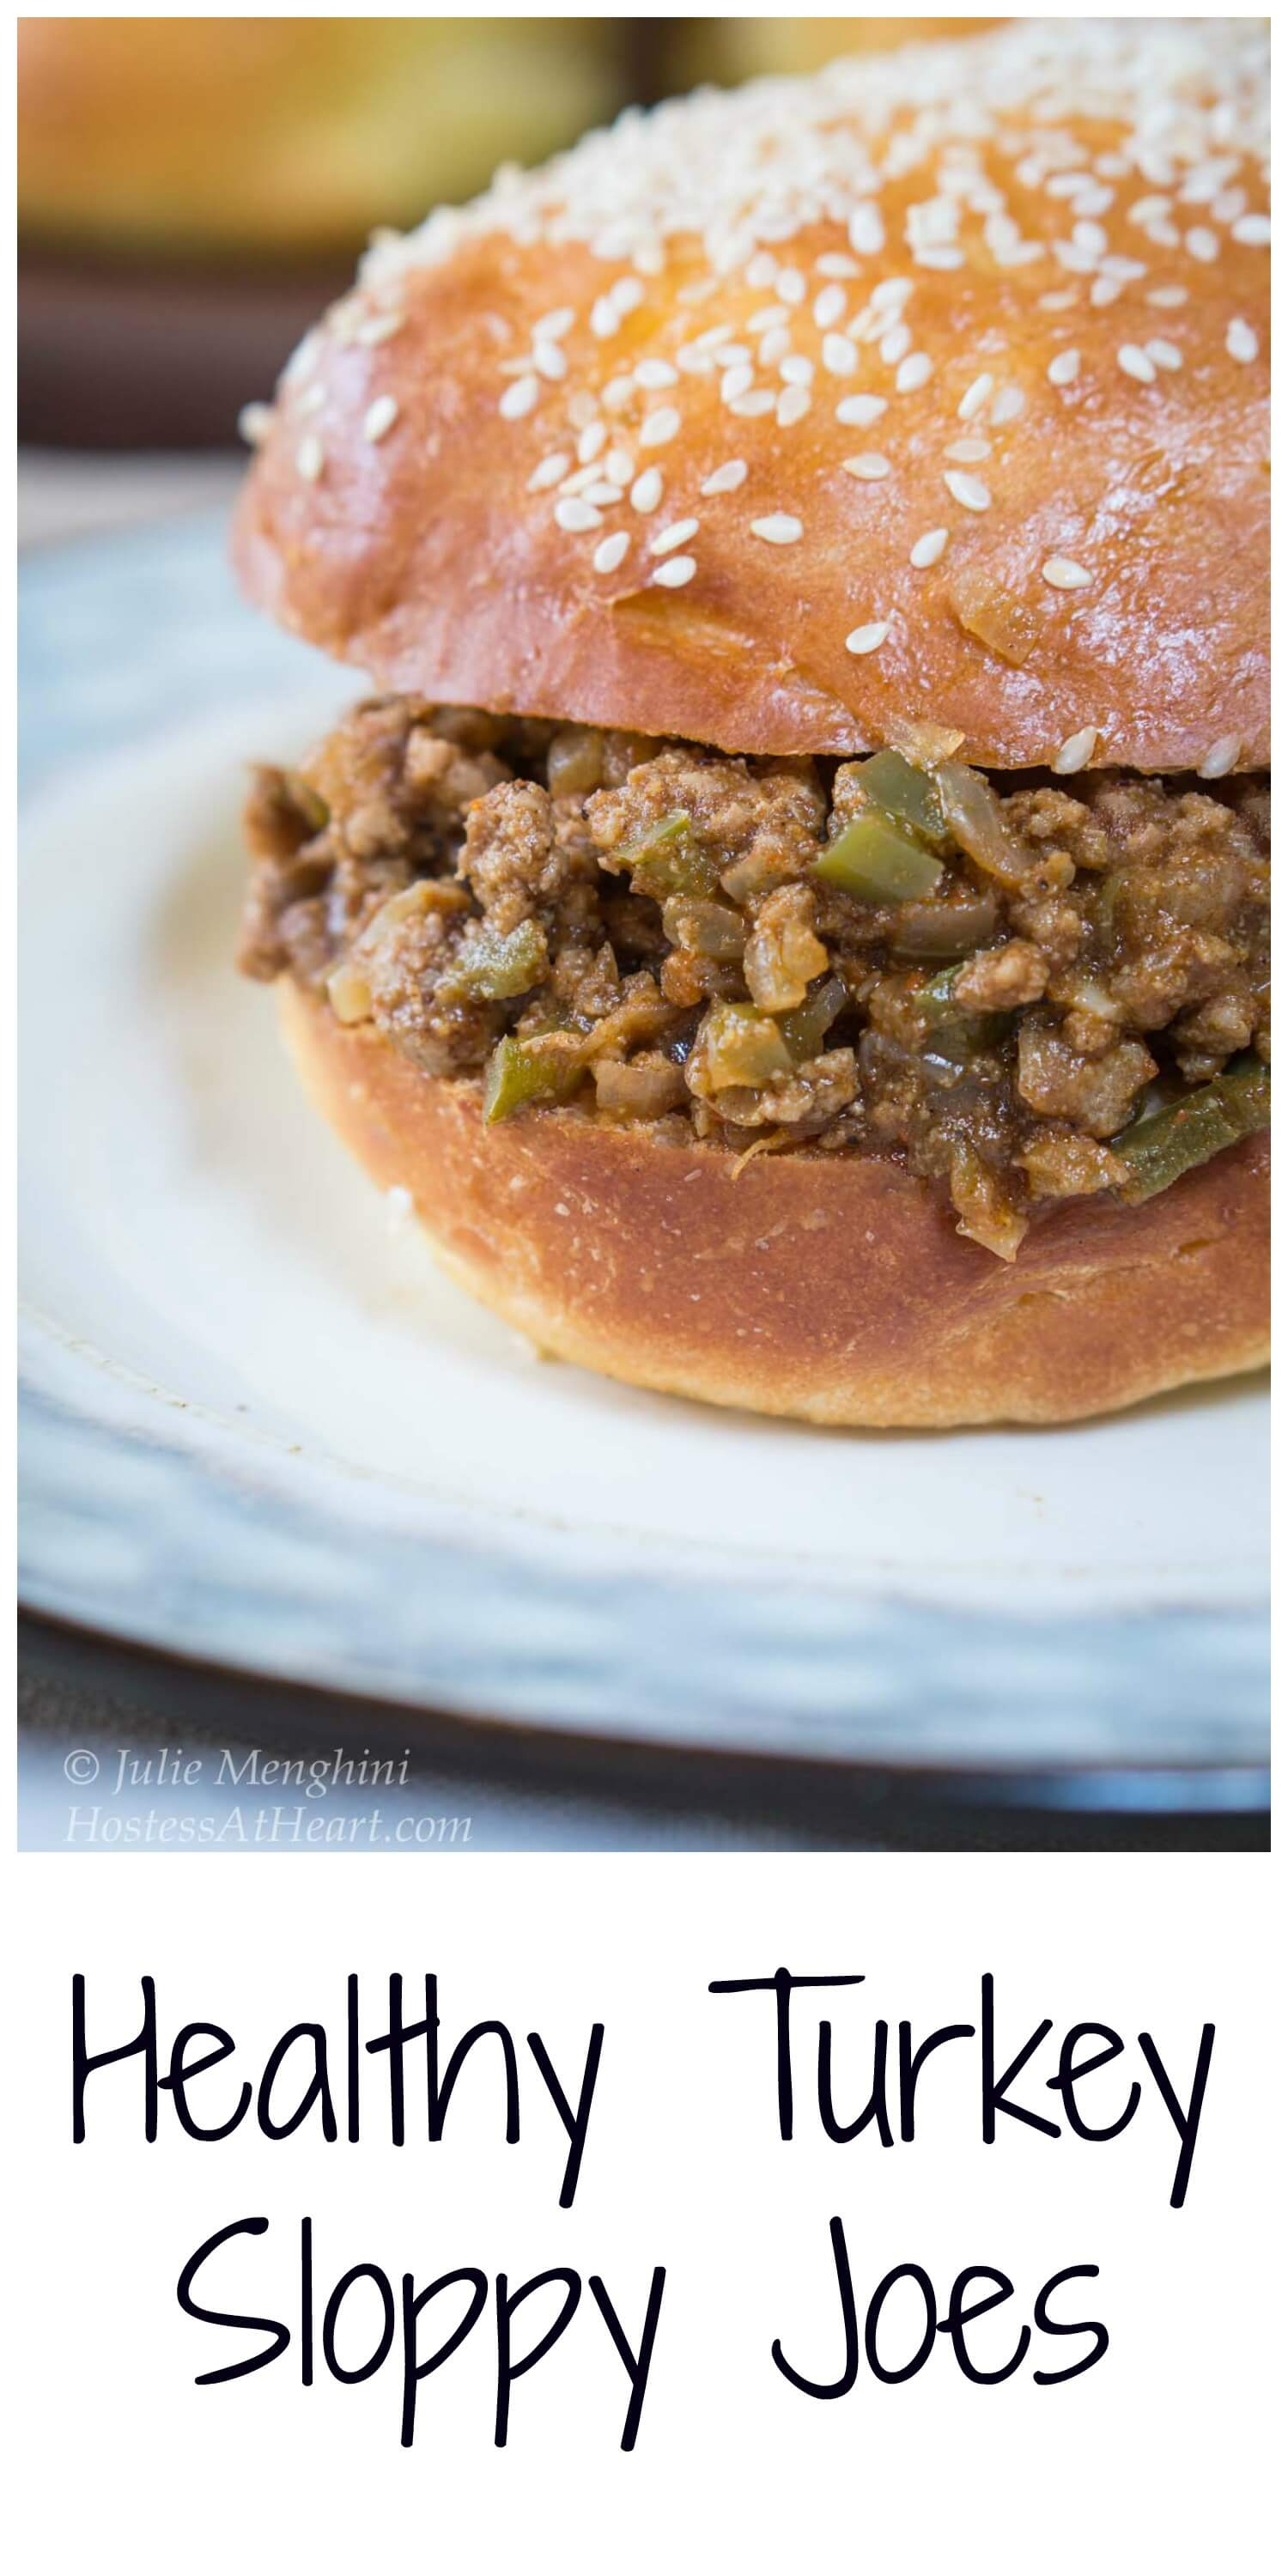 This Turkey Sloppy Joes recipe tastes better than the canned sloppy joes, is just as quick to put together, and no one will know that it's healthier too. #sloppy, #sloppyjoes, #healthy, #cookinglight, #healthyrecipes